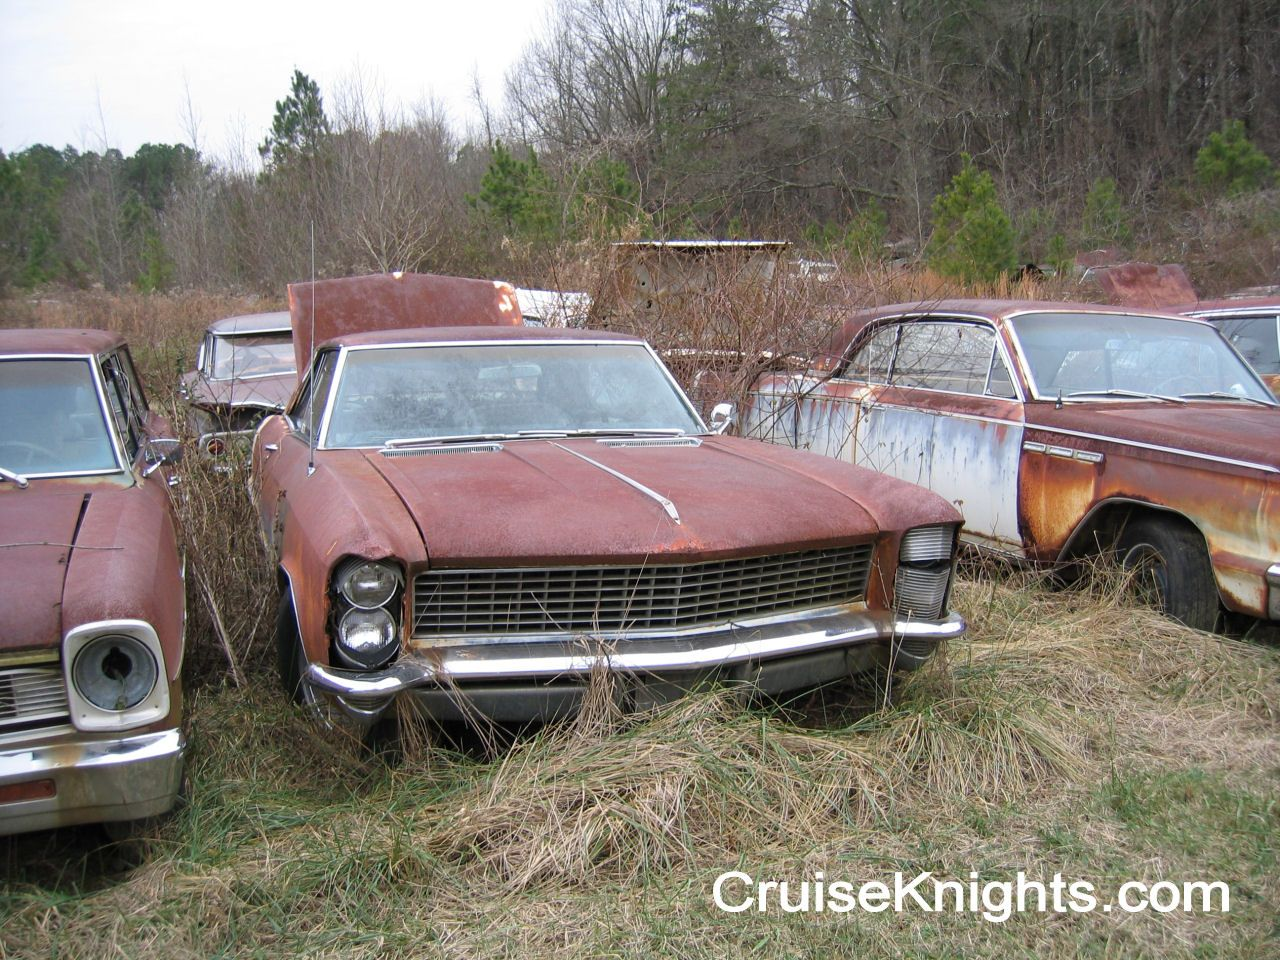 Old Car City Cartersville Ga | directory of Cruise Nights, Auto ...